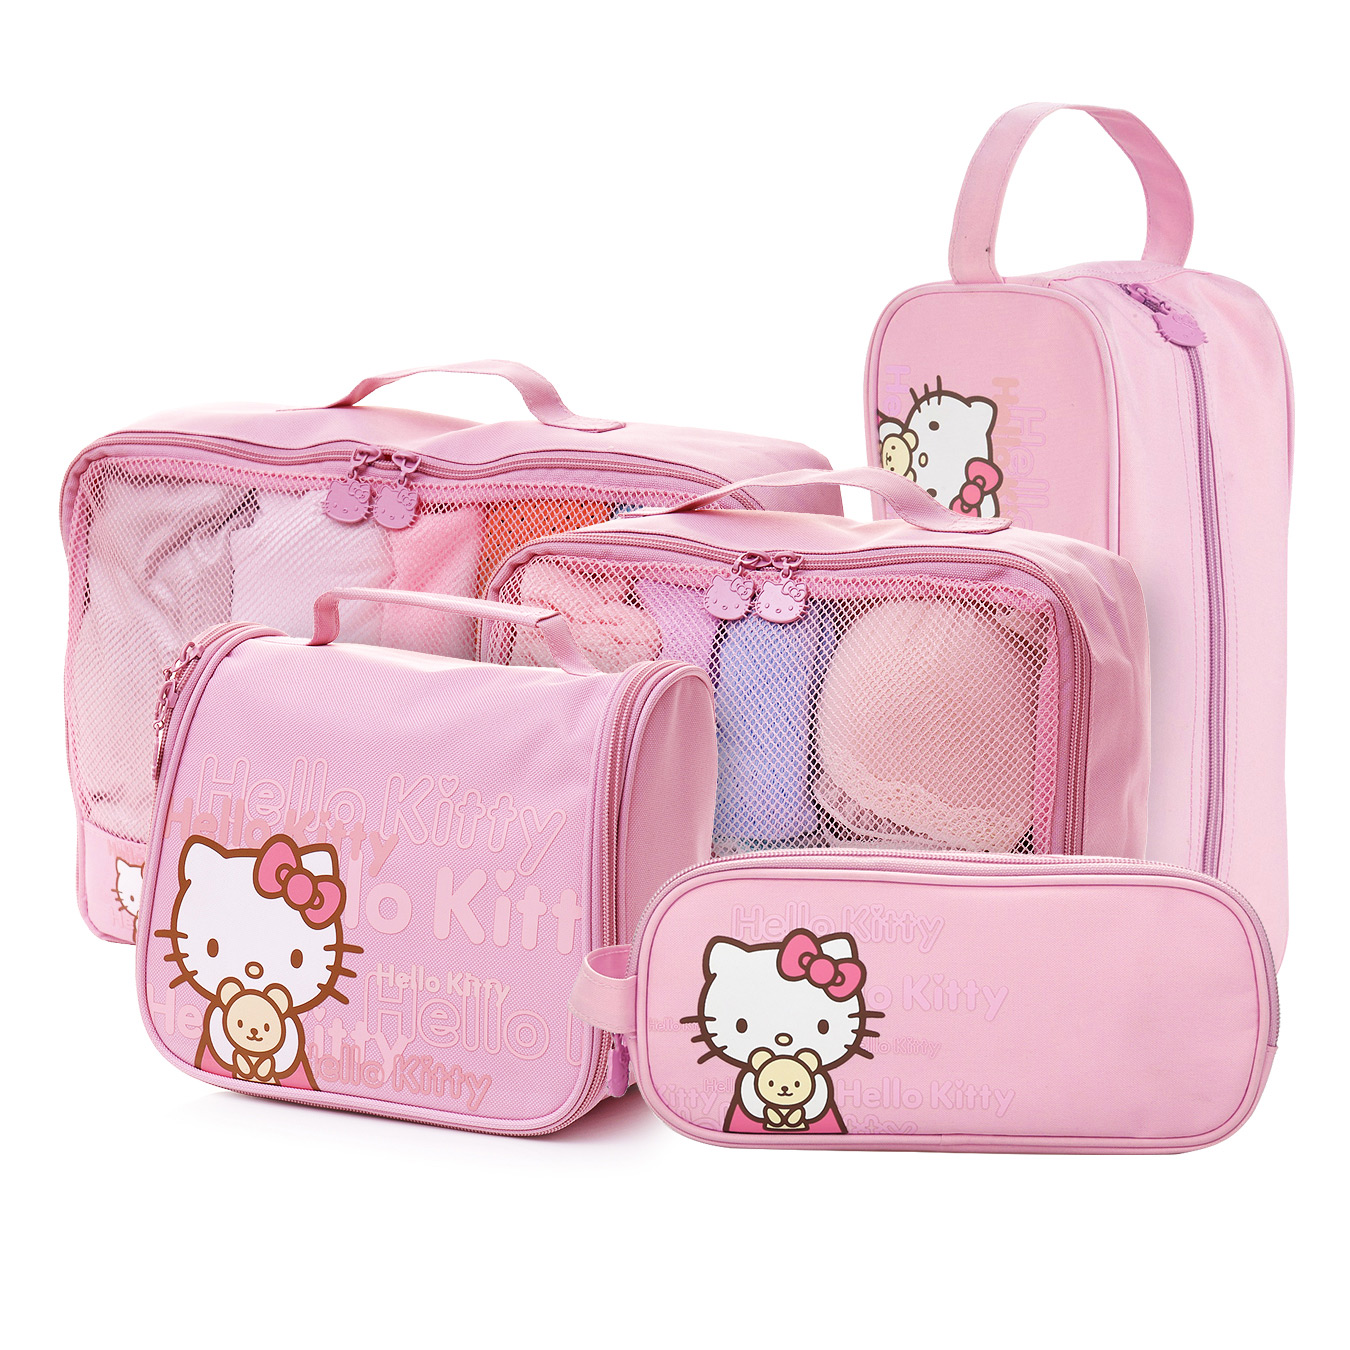 79bde91bfa2a Buy Hello kitty hello kitty cosmetic bag cute blue orange travel toiletry  kits suit female income carolina package travel goods in Cheap Price on  Alibaba. ...